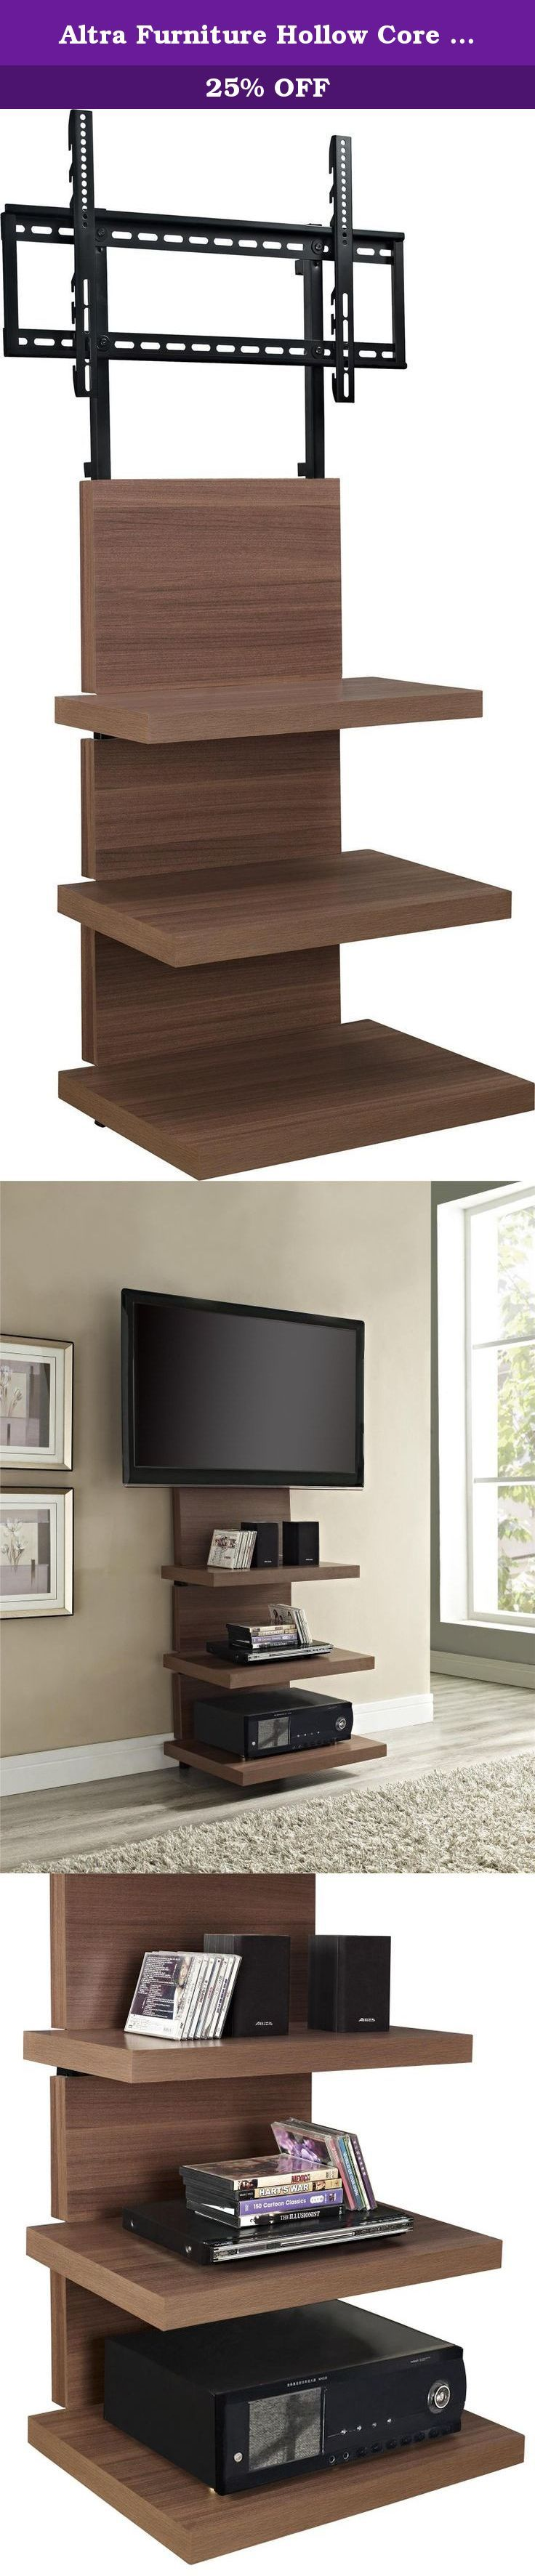 """Altra Furniture Hollow Core AltraMount TV Stand with Mount for TVs Up to 60-Inch, Walnut Finish. Design a sleek new space for your home theater – without the hassle or high cost of renovations and custom shelving. The AltraMount Hollow Core TV Stand offers the look of a custom wall mount for a fraction of the price. More than just a TV stand, this smart unit includes a TV mount that holds up to a 60"""" flat-screen TV. Below the mount, there are three shelves – each 2-Inch thick – to store a..."""